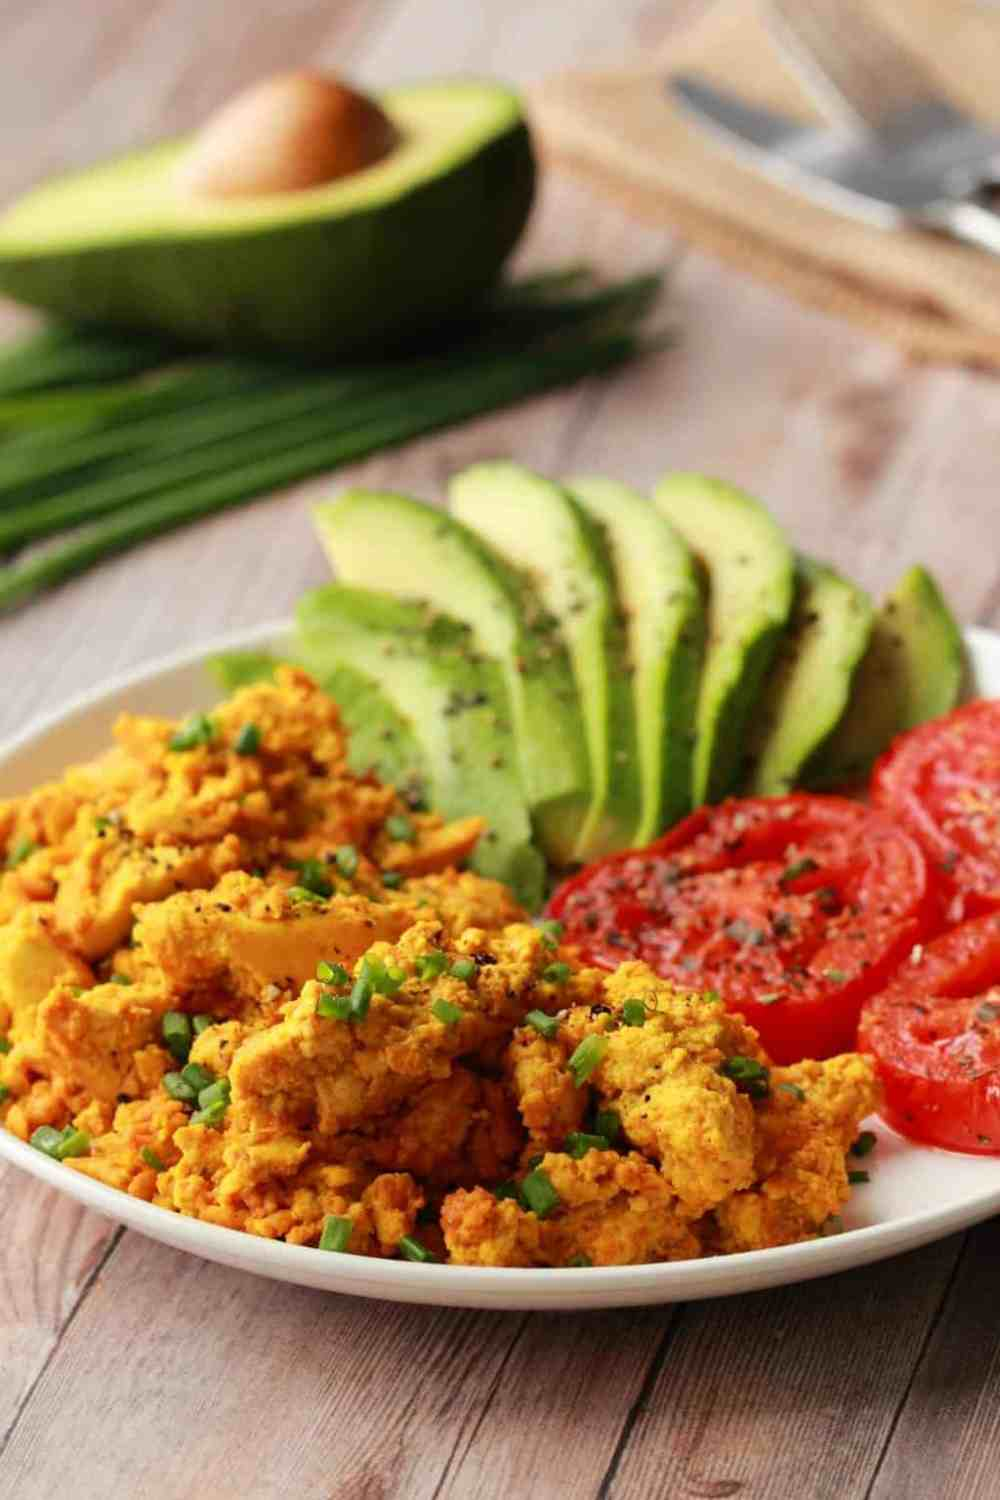 13 of 31 vegan tofu scramble